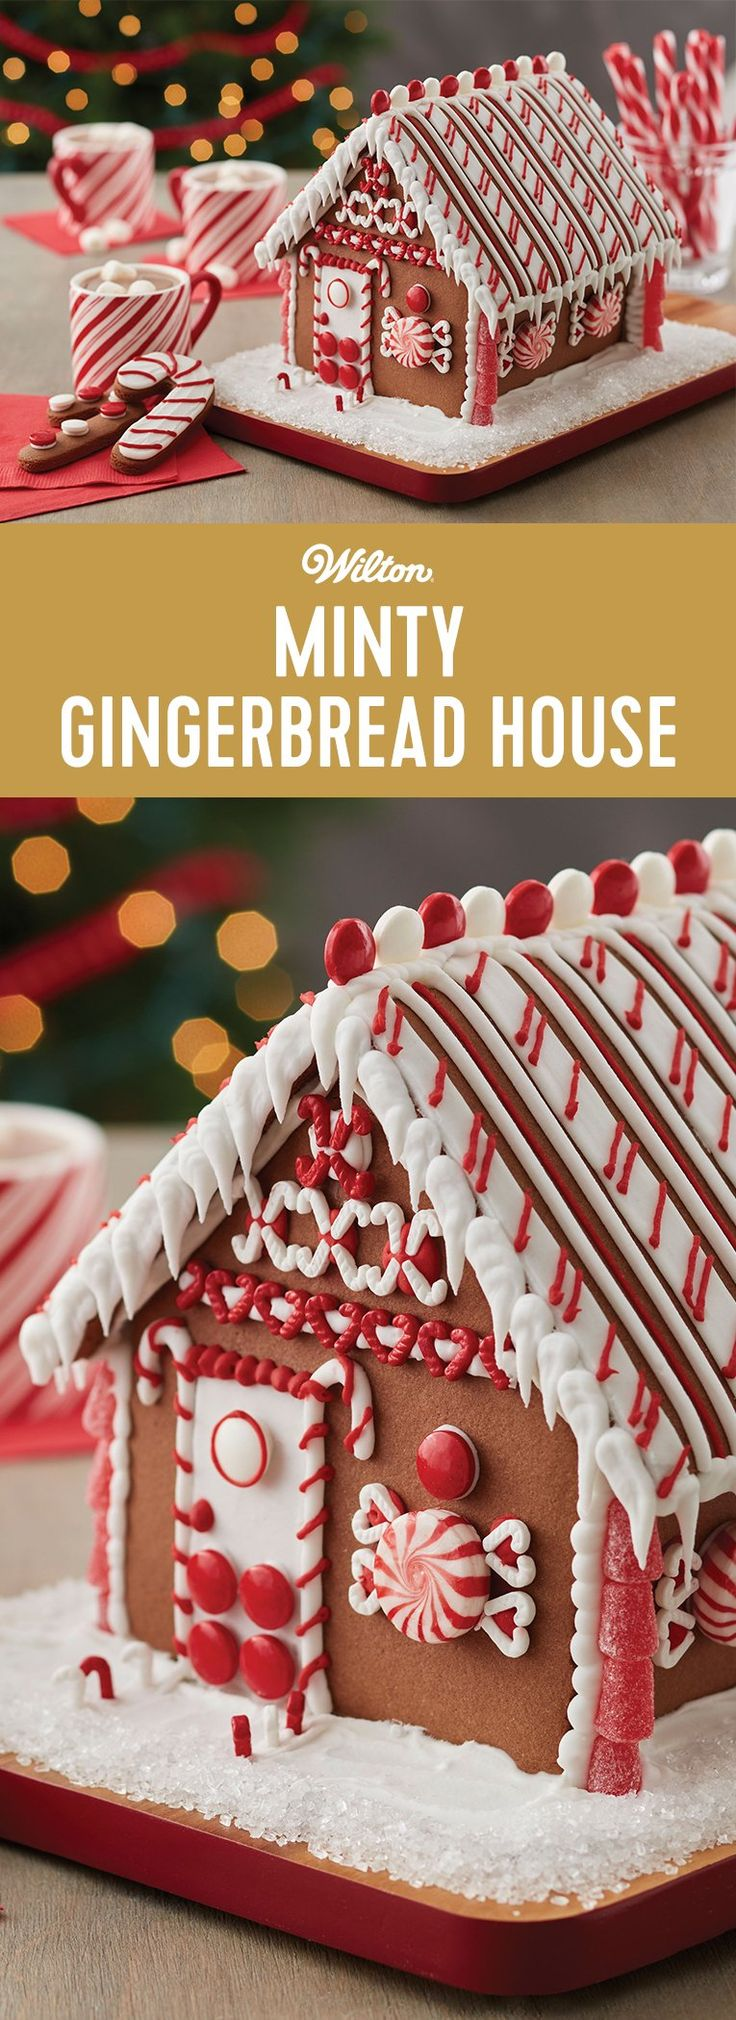 Minty Gingerbread House - One look and you won't be able to wait to decorate this chocolate cookie house kit, bright with visions of peppermint colors and candy. Sharing the activity of decorating this house together makes the entire family merry!